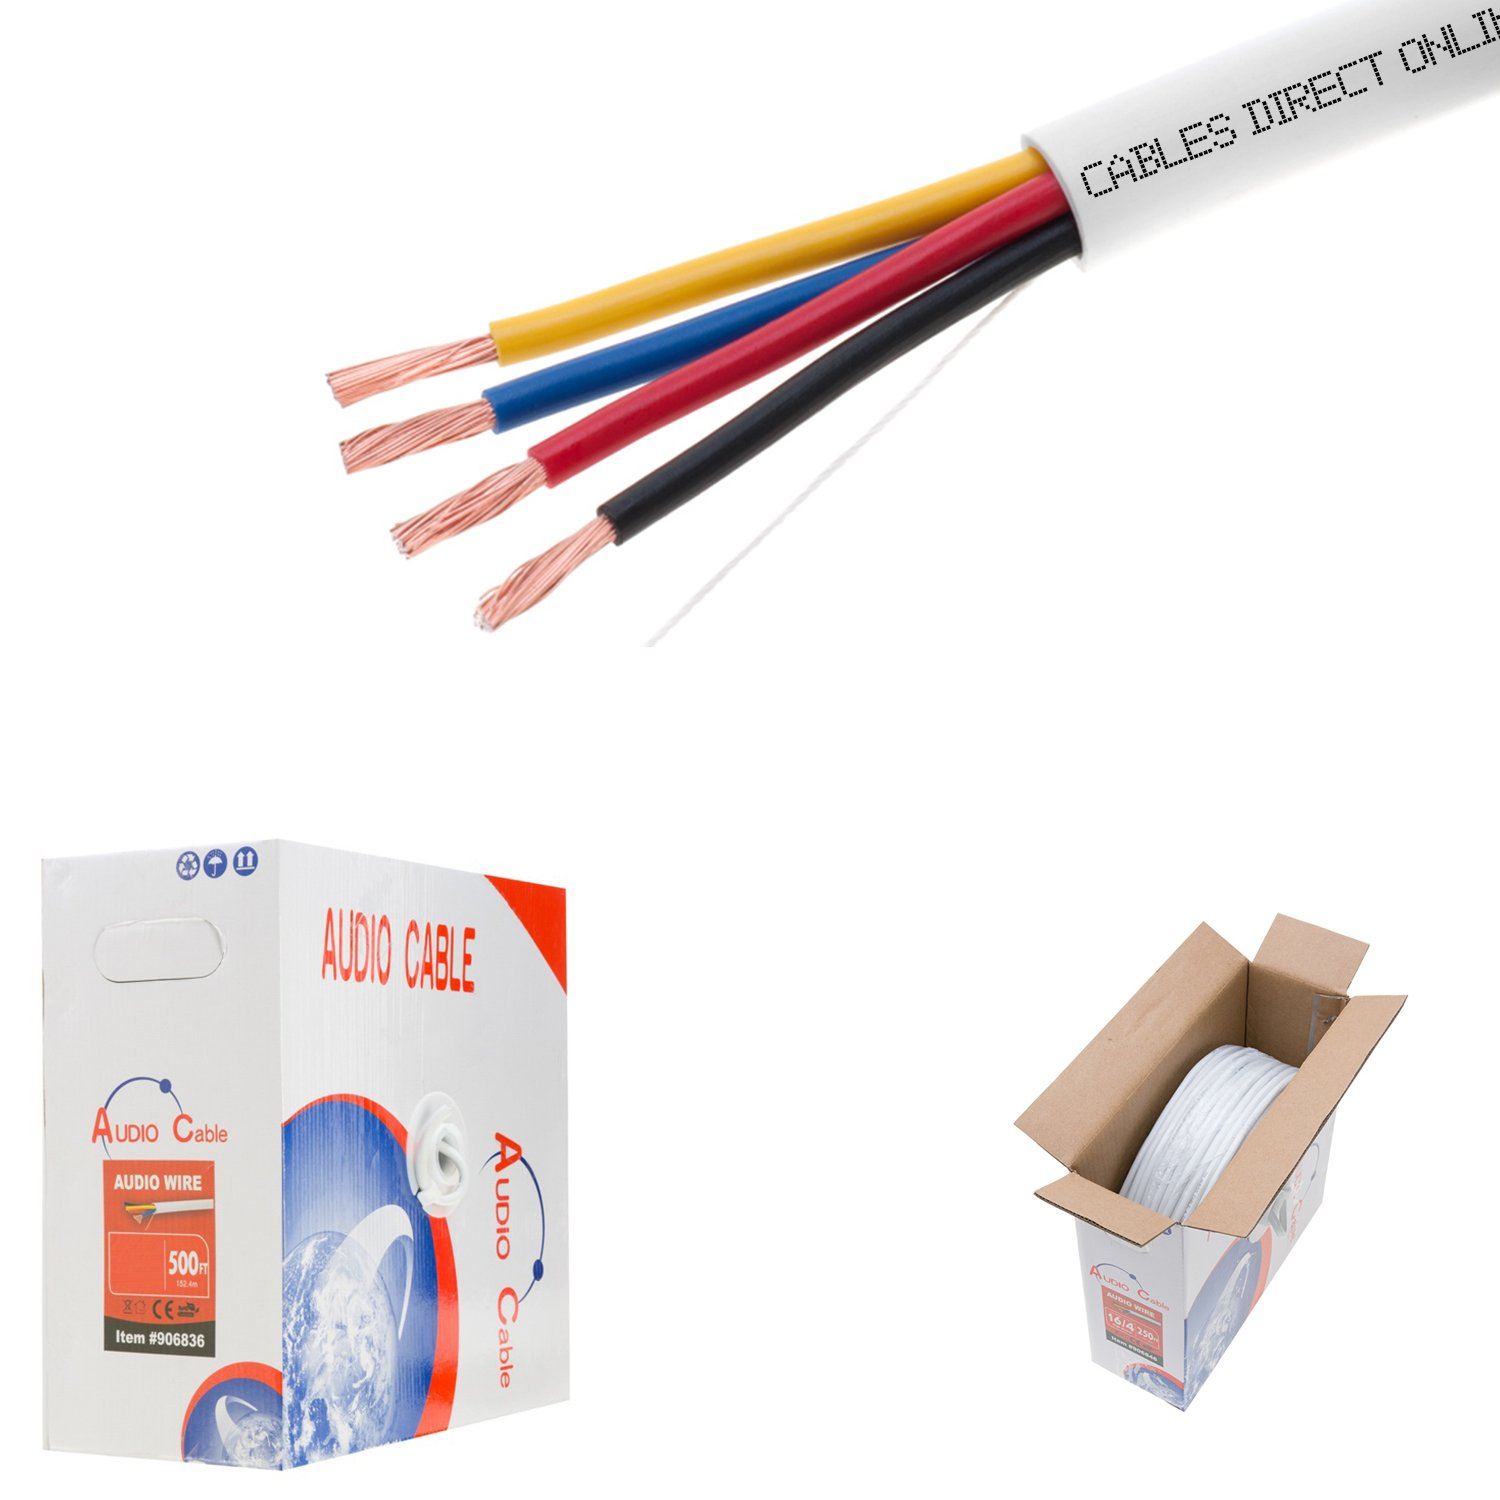 500ft 16AWG 4 Conductors (16/4) CL2 Rated Loud Speaker Cable Wire, Pull Box (For In-Wall Installation) (16AWG / 4 Conductors, 500ft)